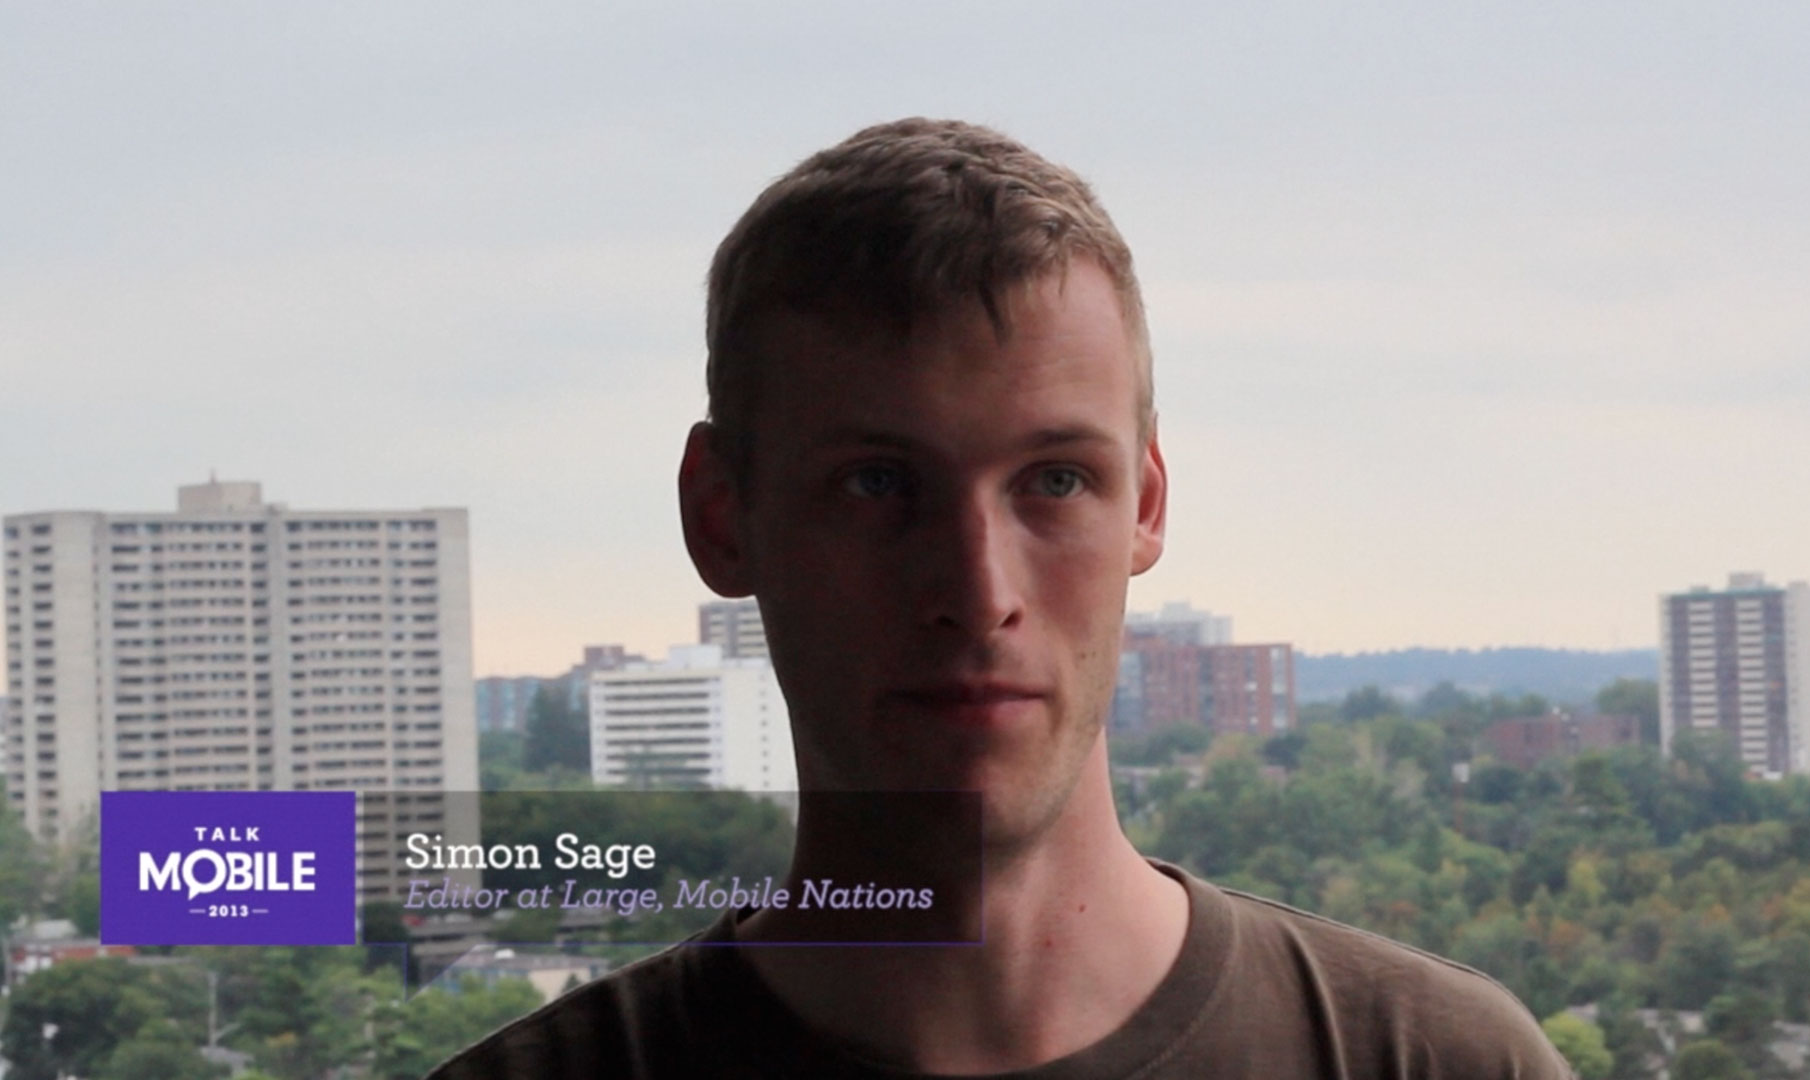 Simon Sage on the cost of data roaming